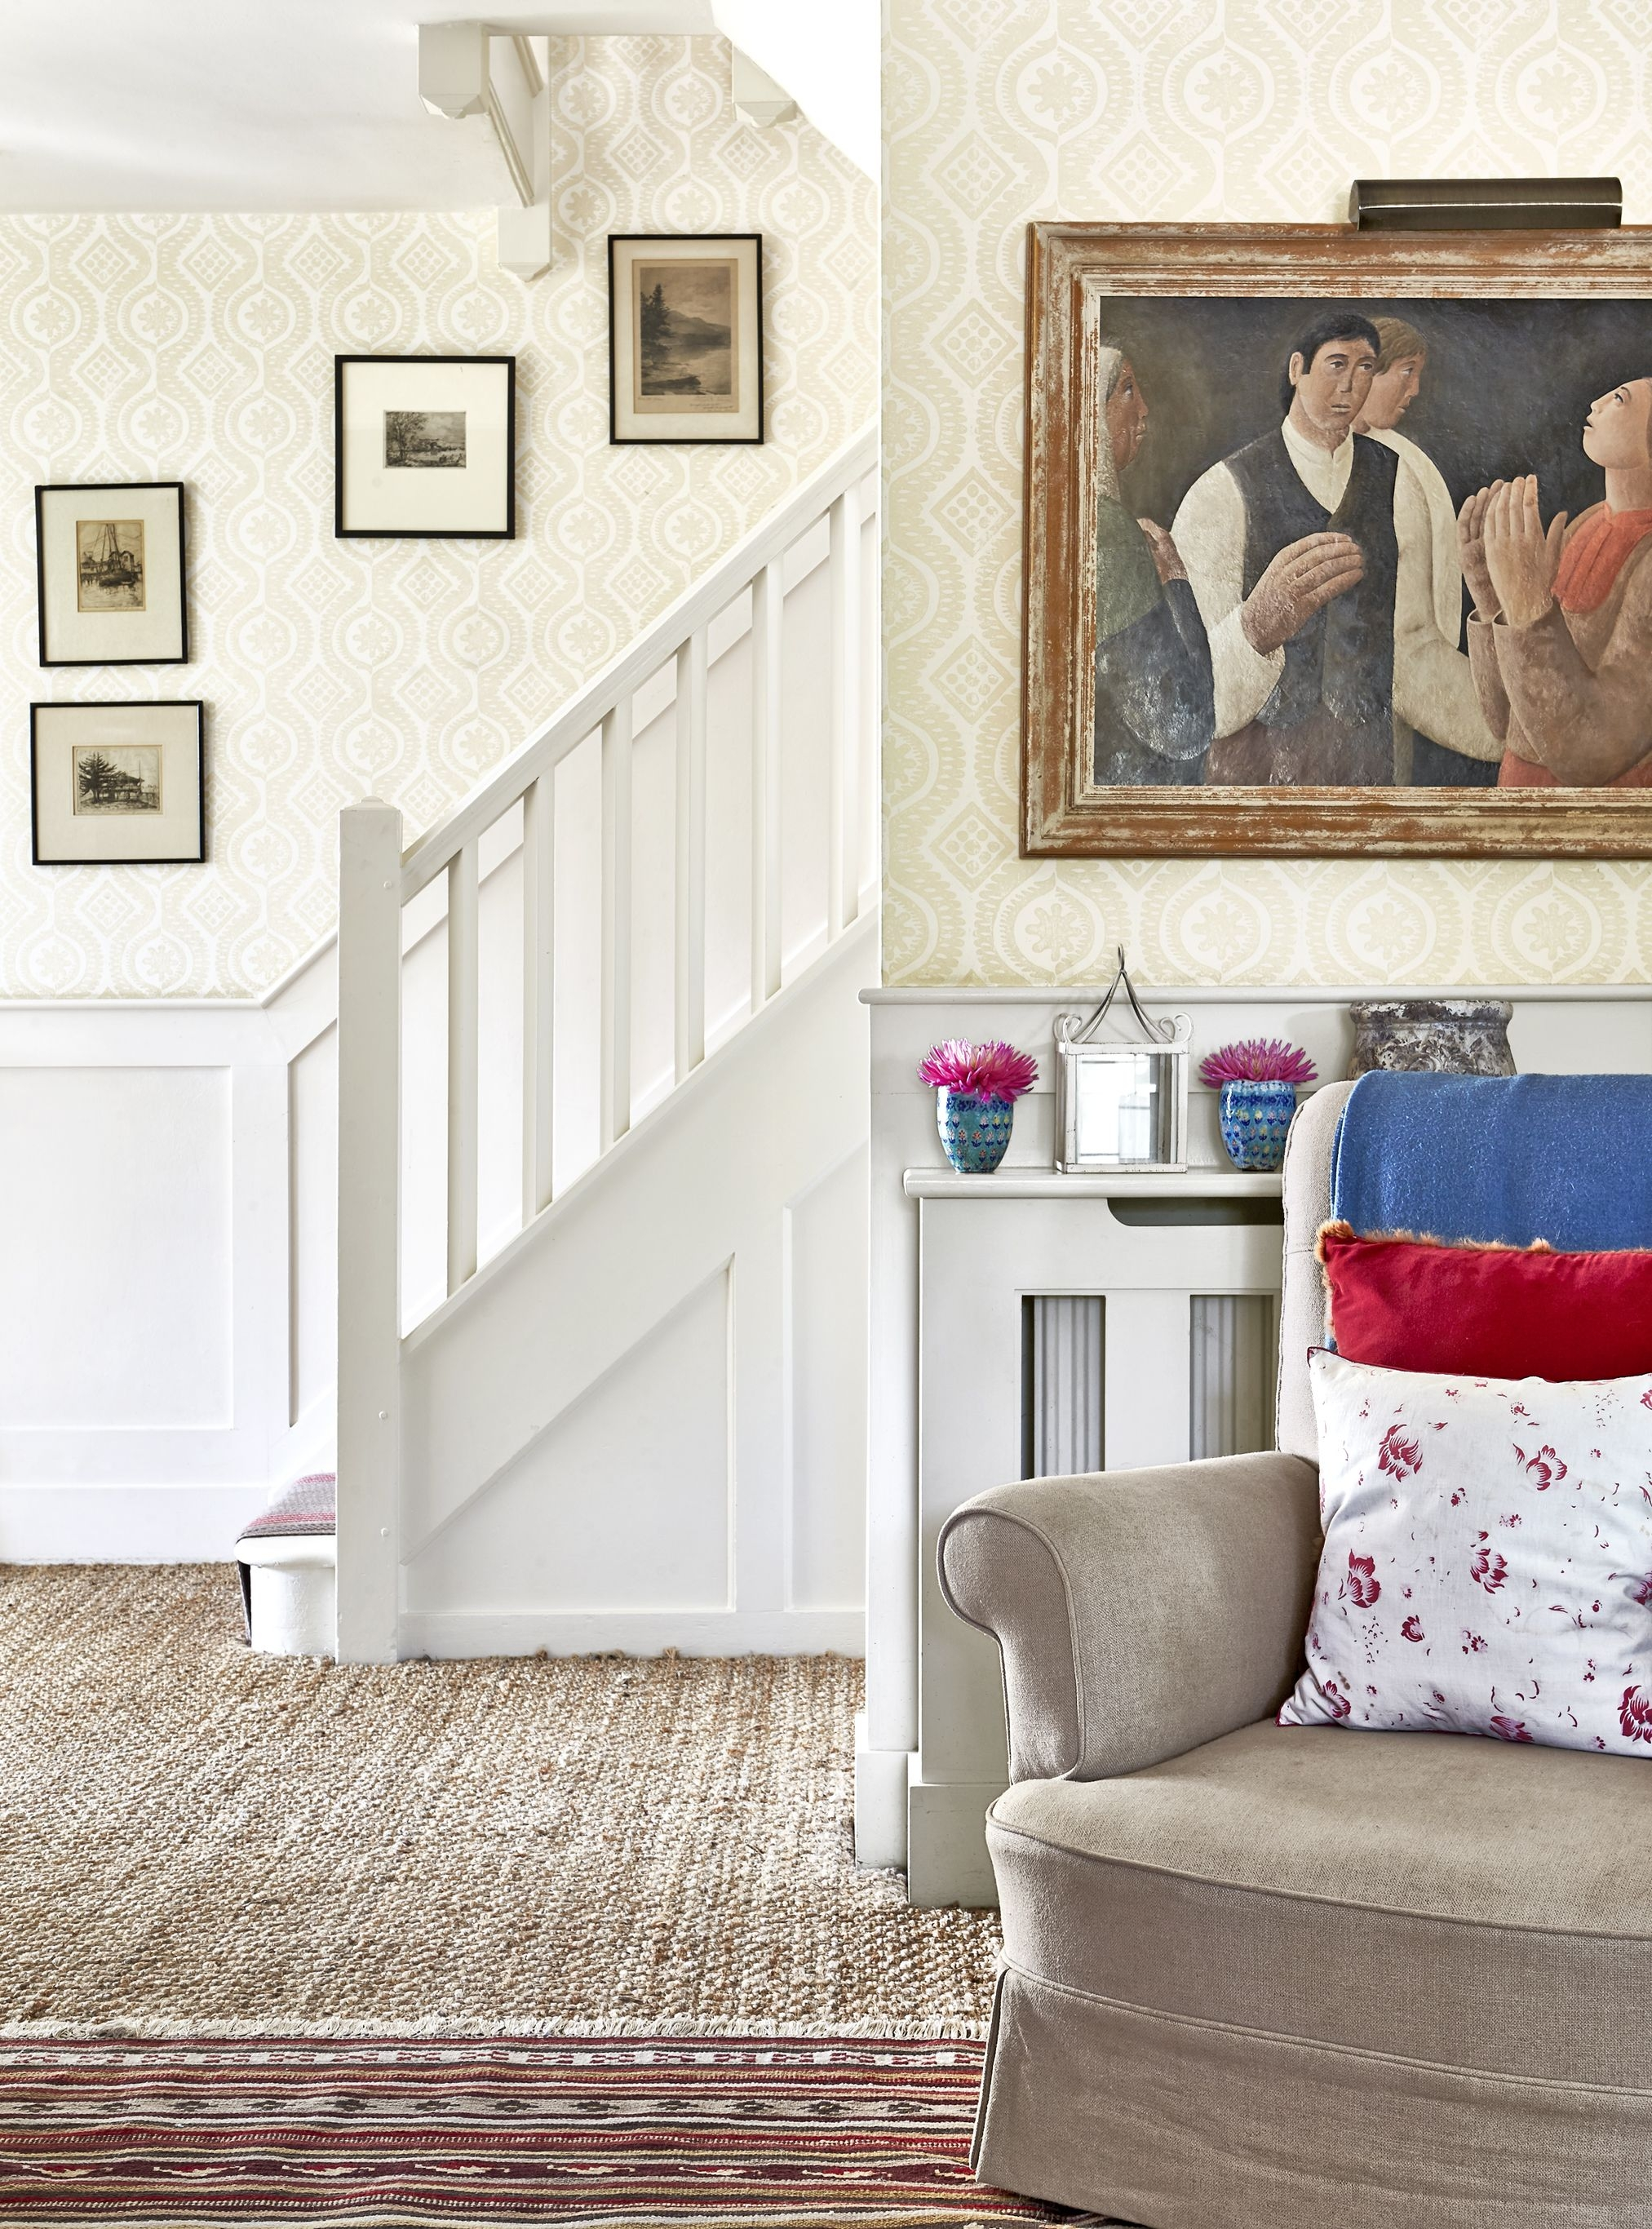 55 Best Staircase Ideas Top Ways To Decorate A Stairway | Interior Design For Staircase Wall | Side Wall | Cladding | Outside | 2Nd Floor | Under Stair